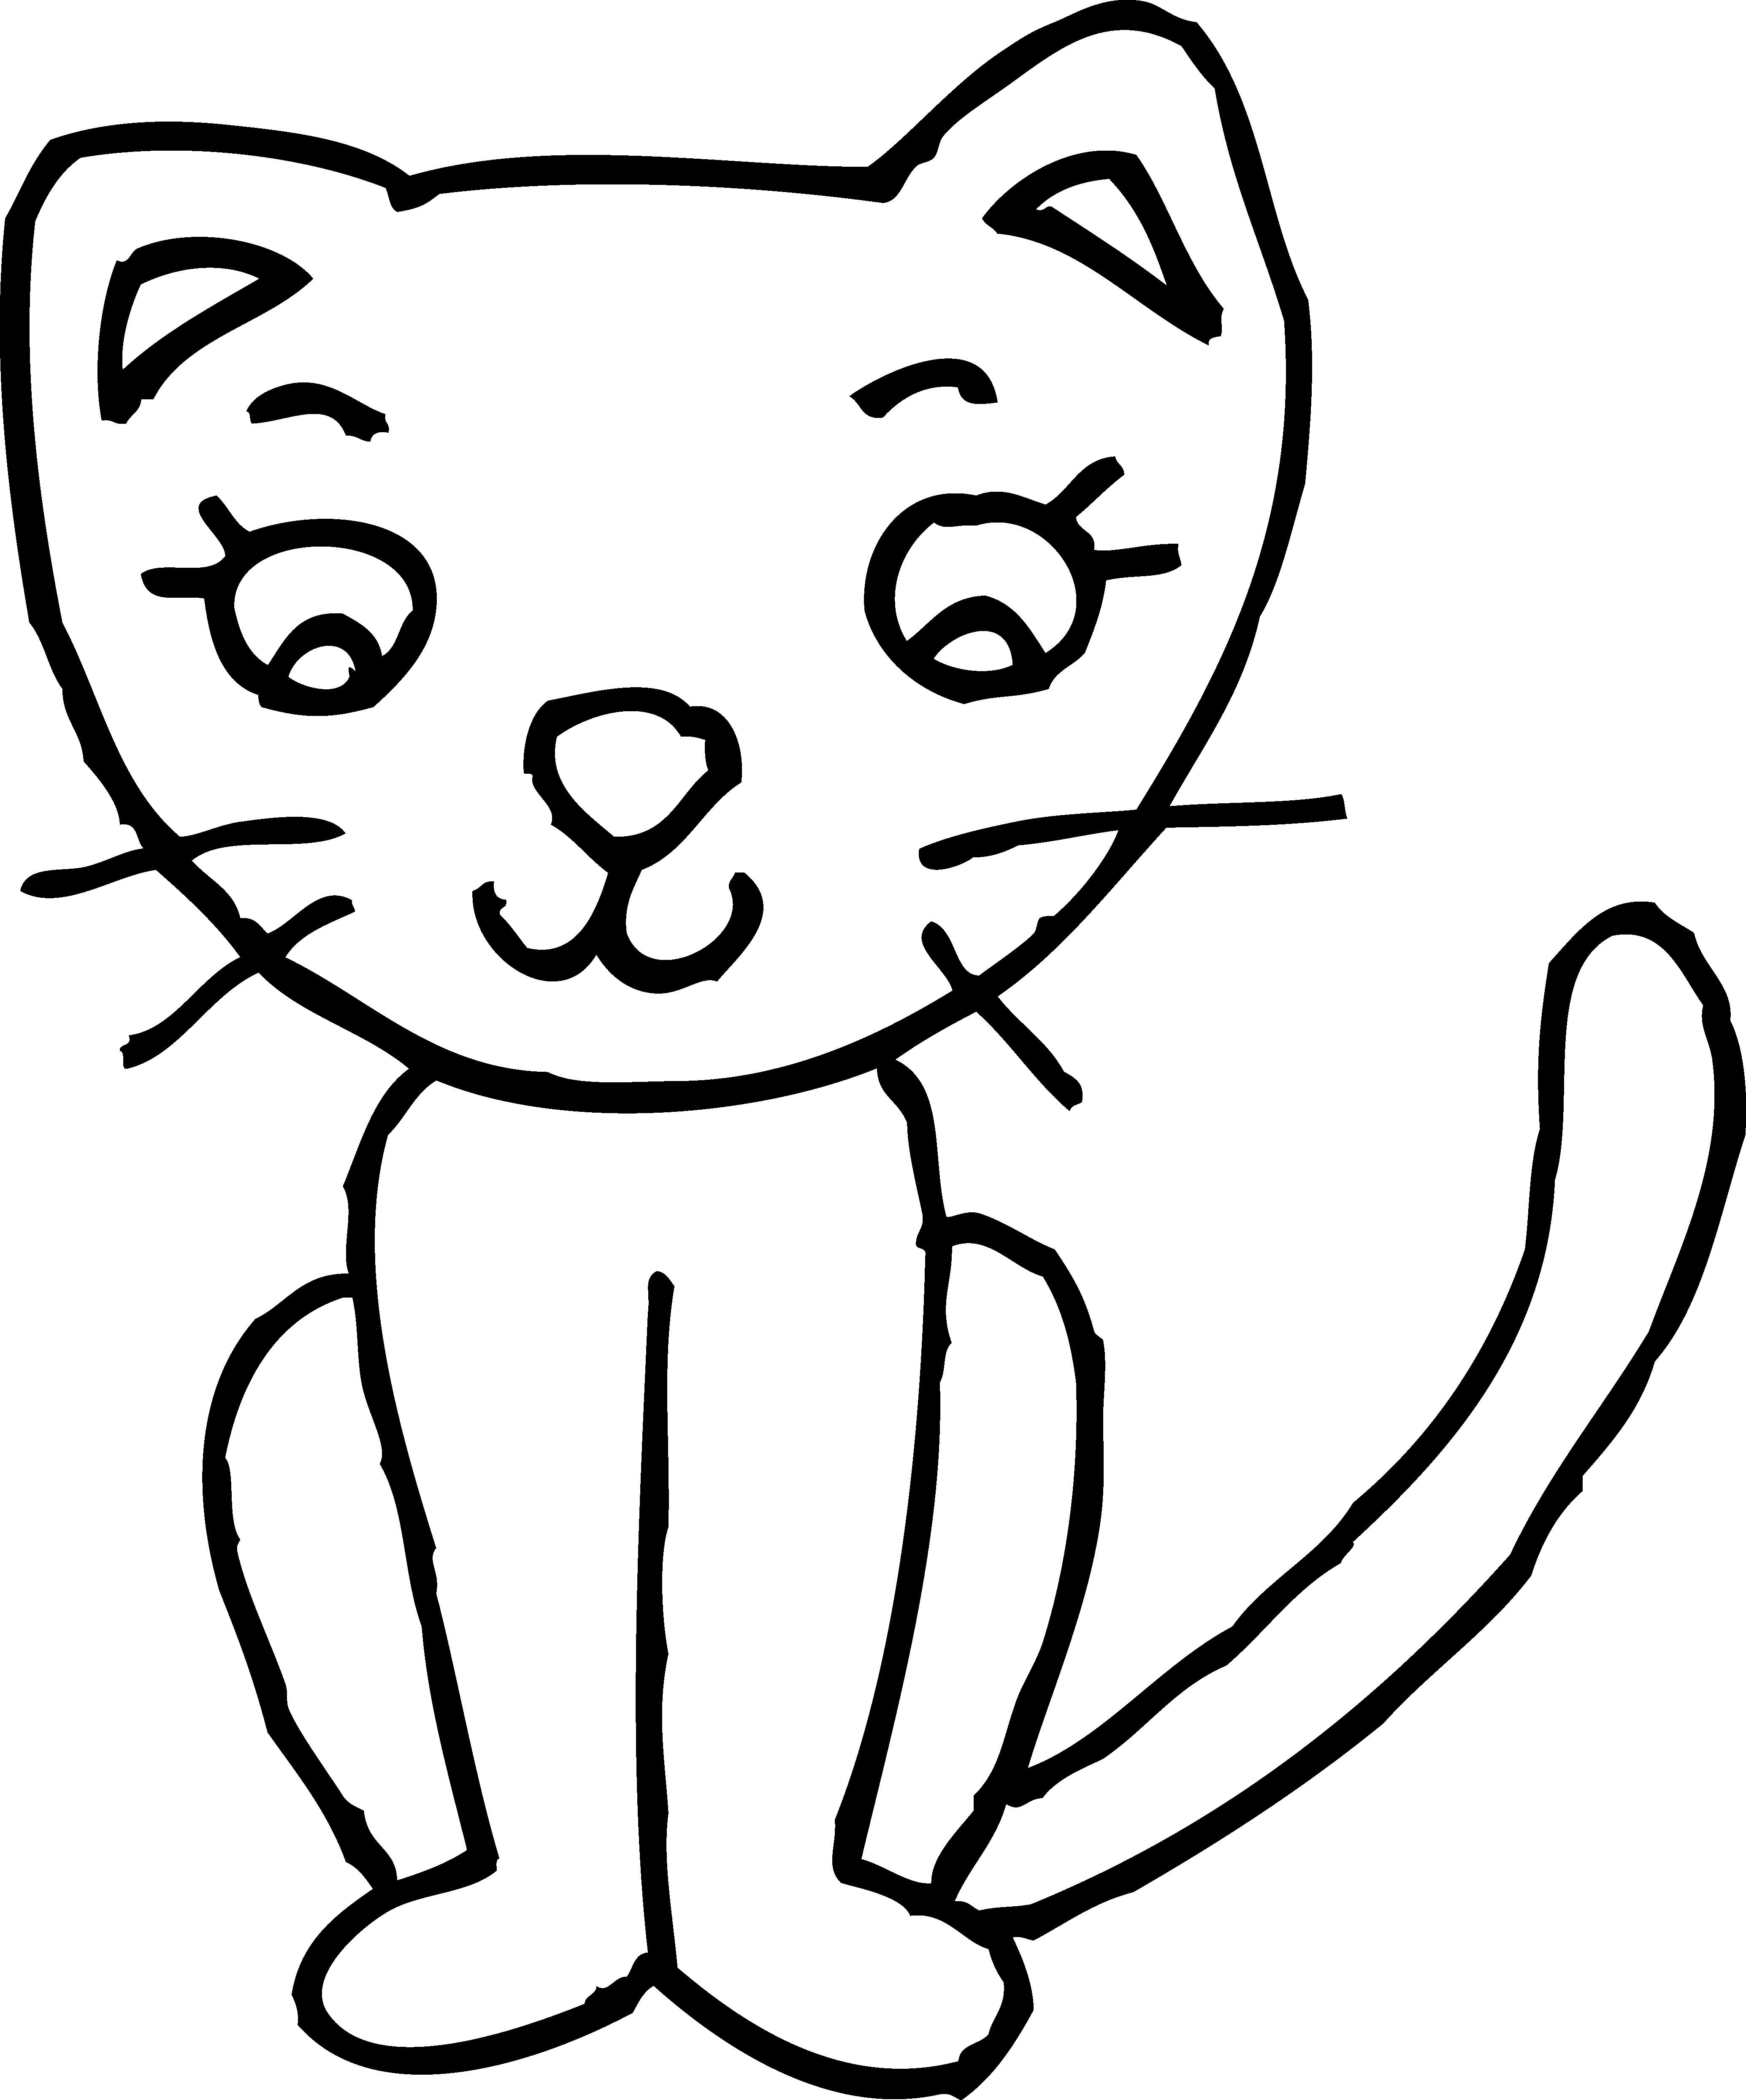 4137x4975 Cat And Dog Black And White Clipart 2196930